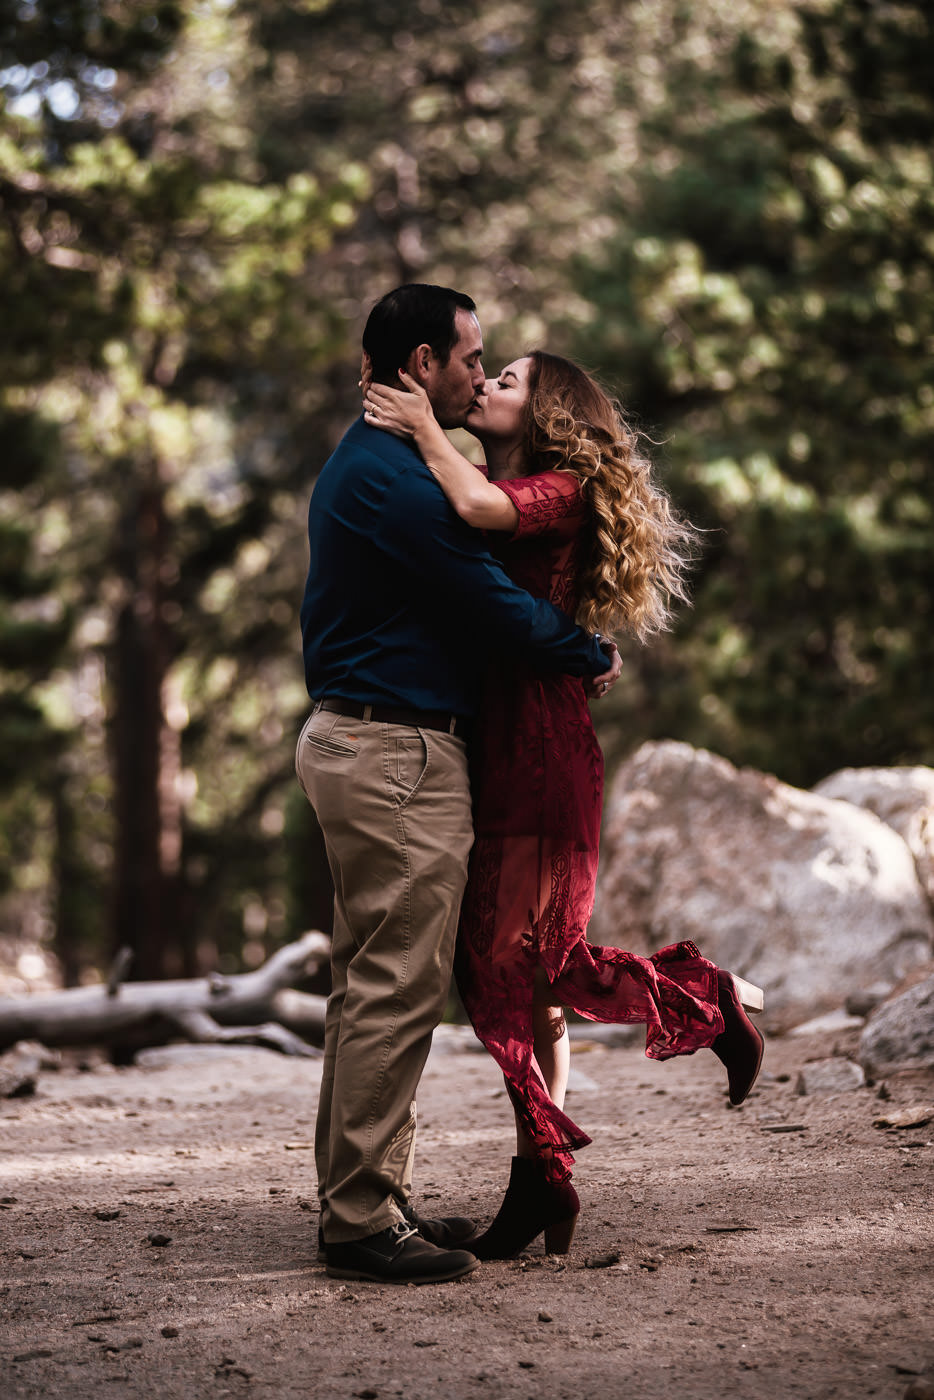 Engaged couple kisses passionately during their photo session.